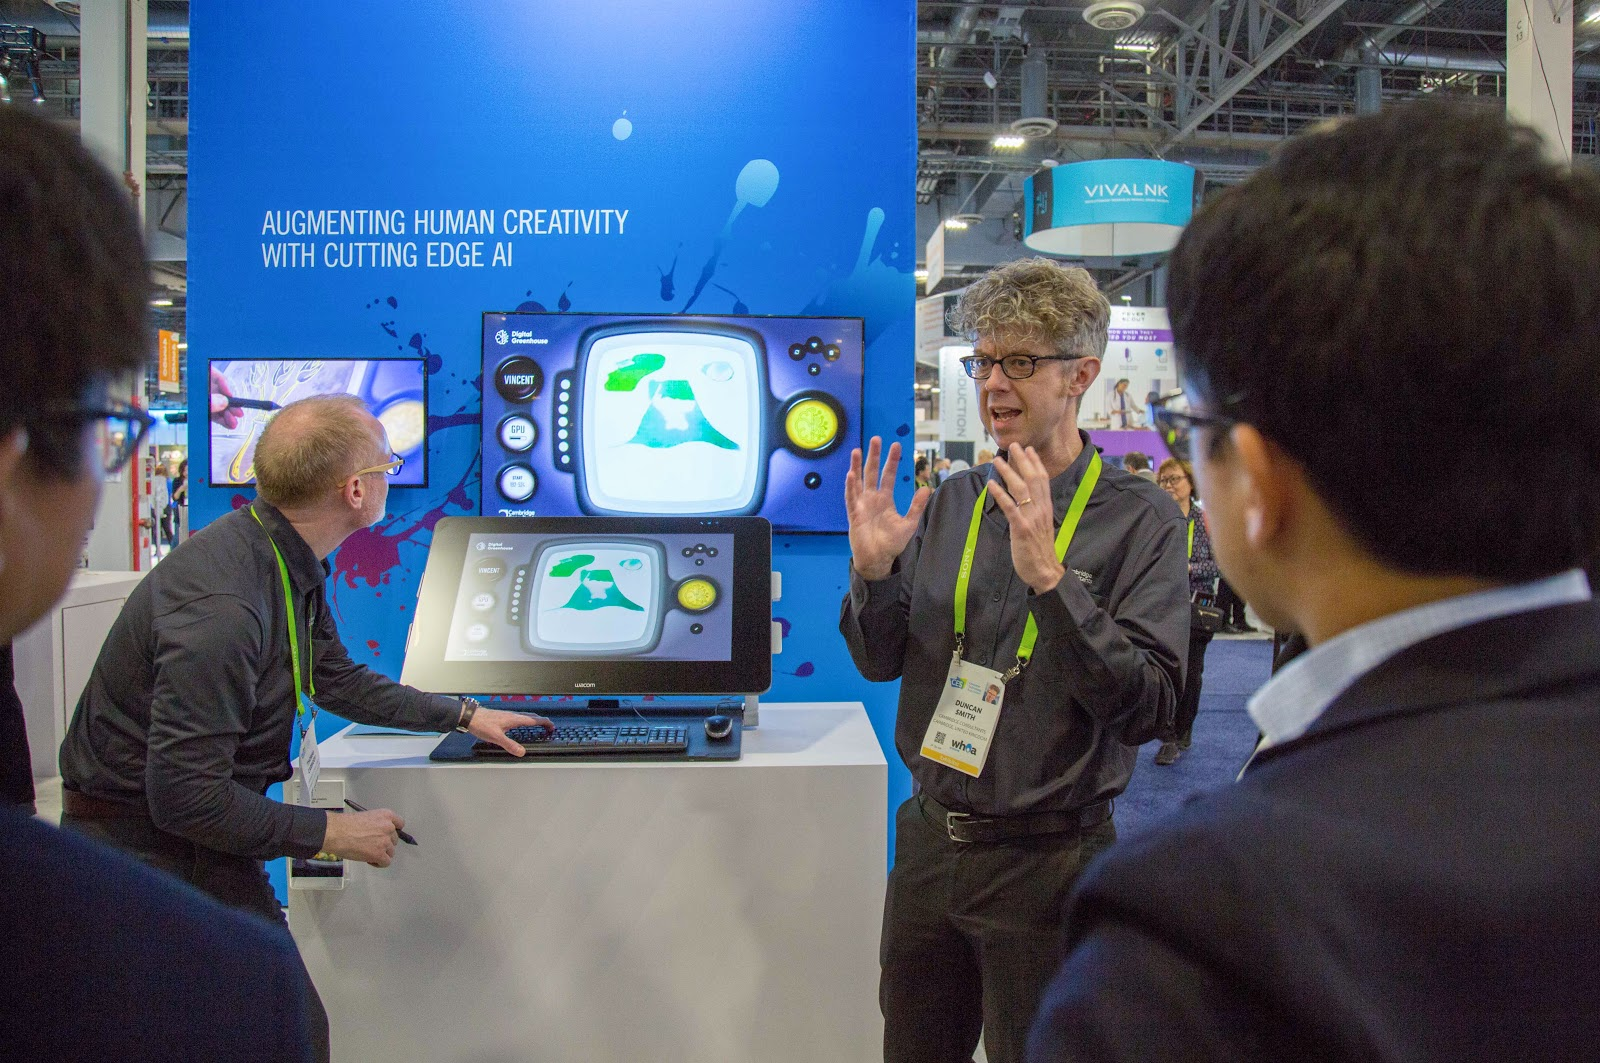 Duncan Smith, Head of the ICE division at Cambridge Consultants, describes Vincent's deep learning capabilities to the crowd at CES 2018.